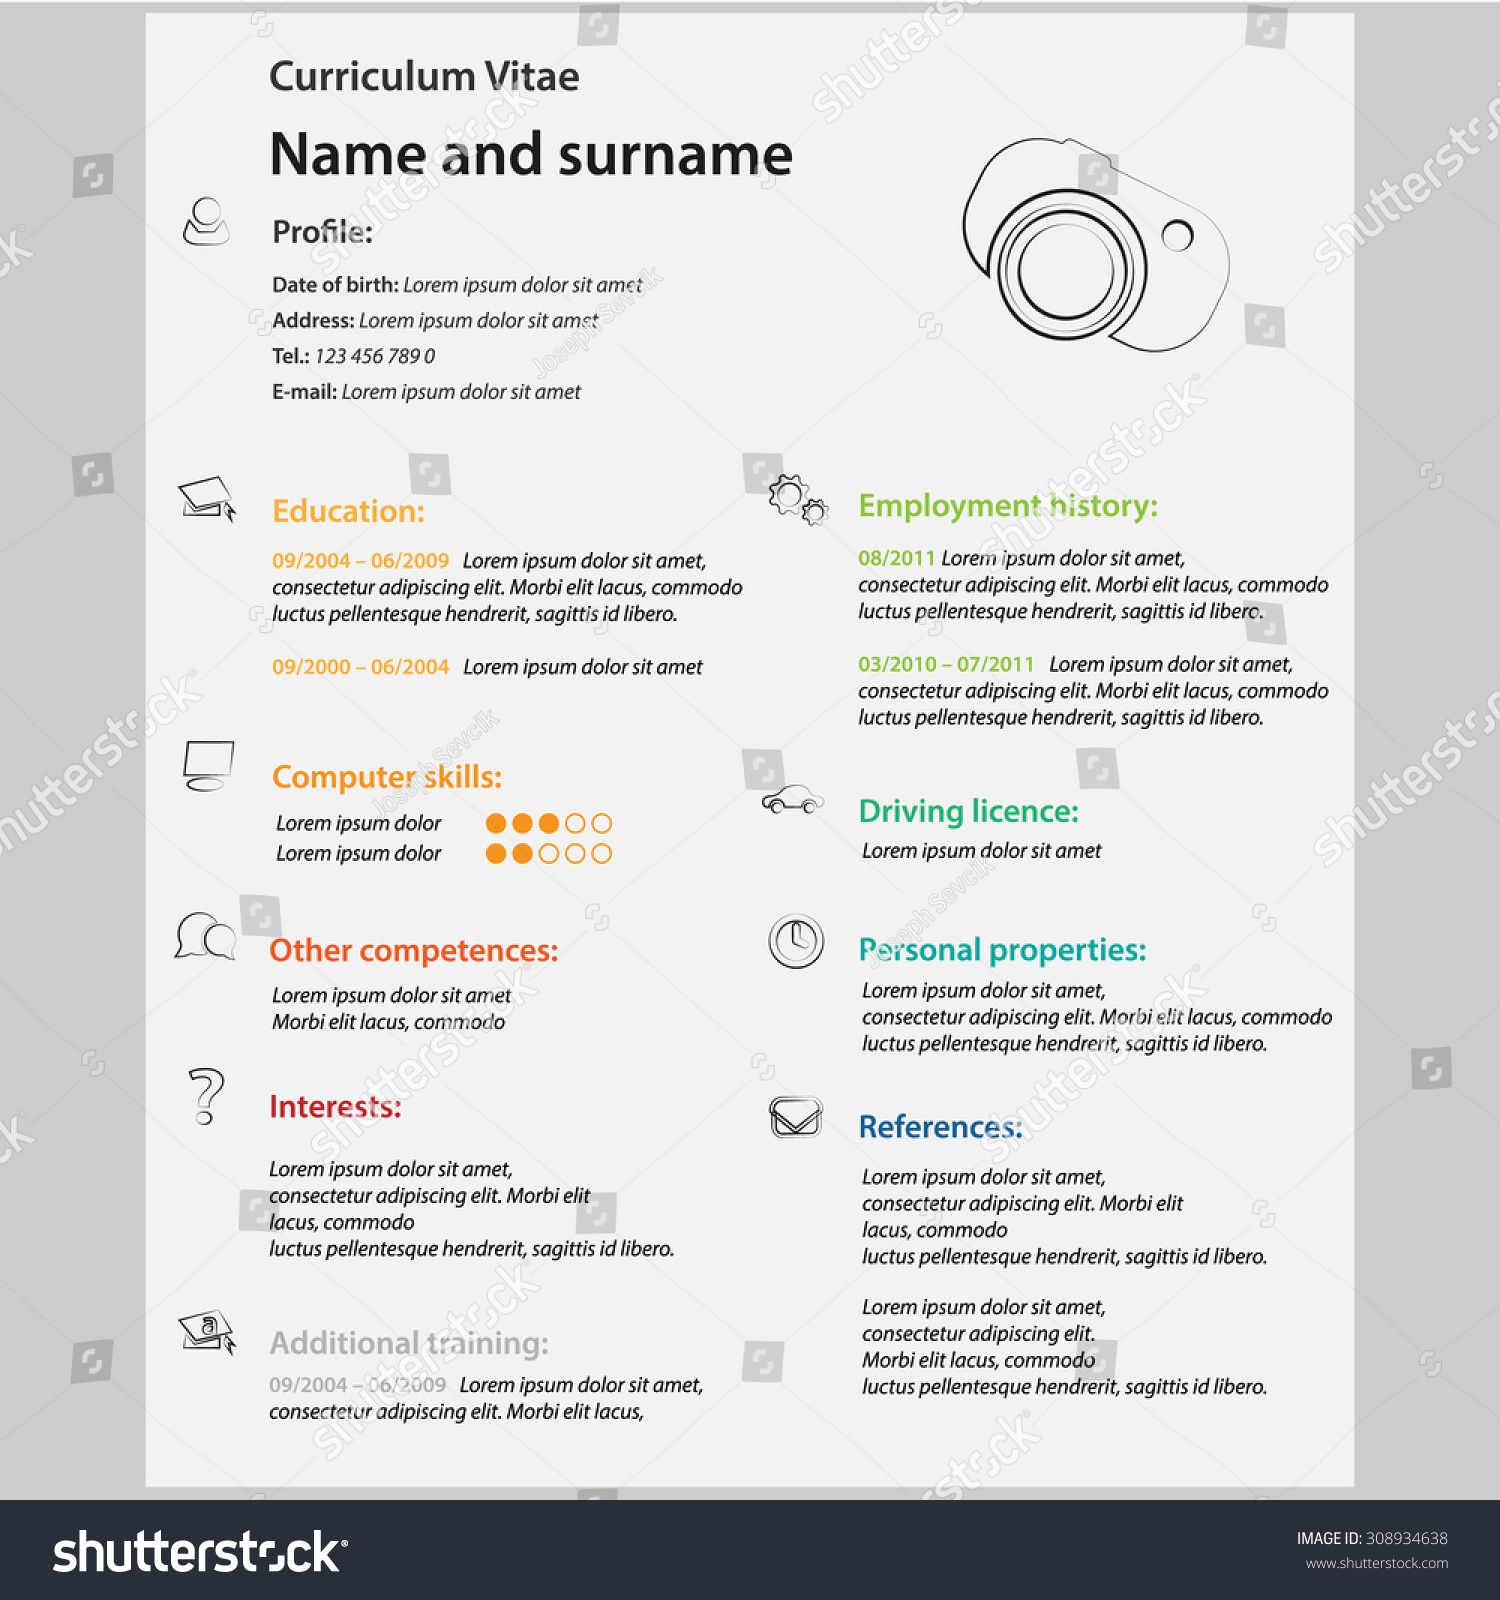 Warehouse Job Description Resume Tex Resume Templates    Best Infographic Visual Resumes  Office Manager Sample Resume Pdf with Microsoft Word Resume Templates Excel Tex Resume Templates   Resume Modern Cv  Best Creative Cv Templates Cv Human Resources Assistant Resume Word